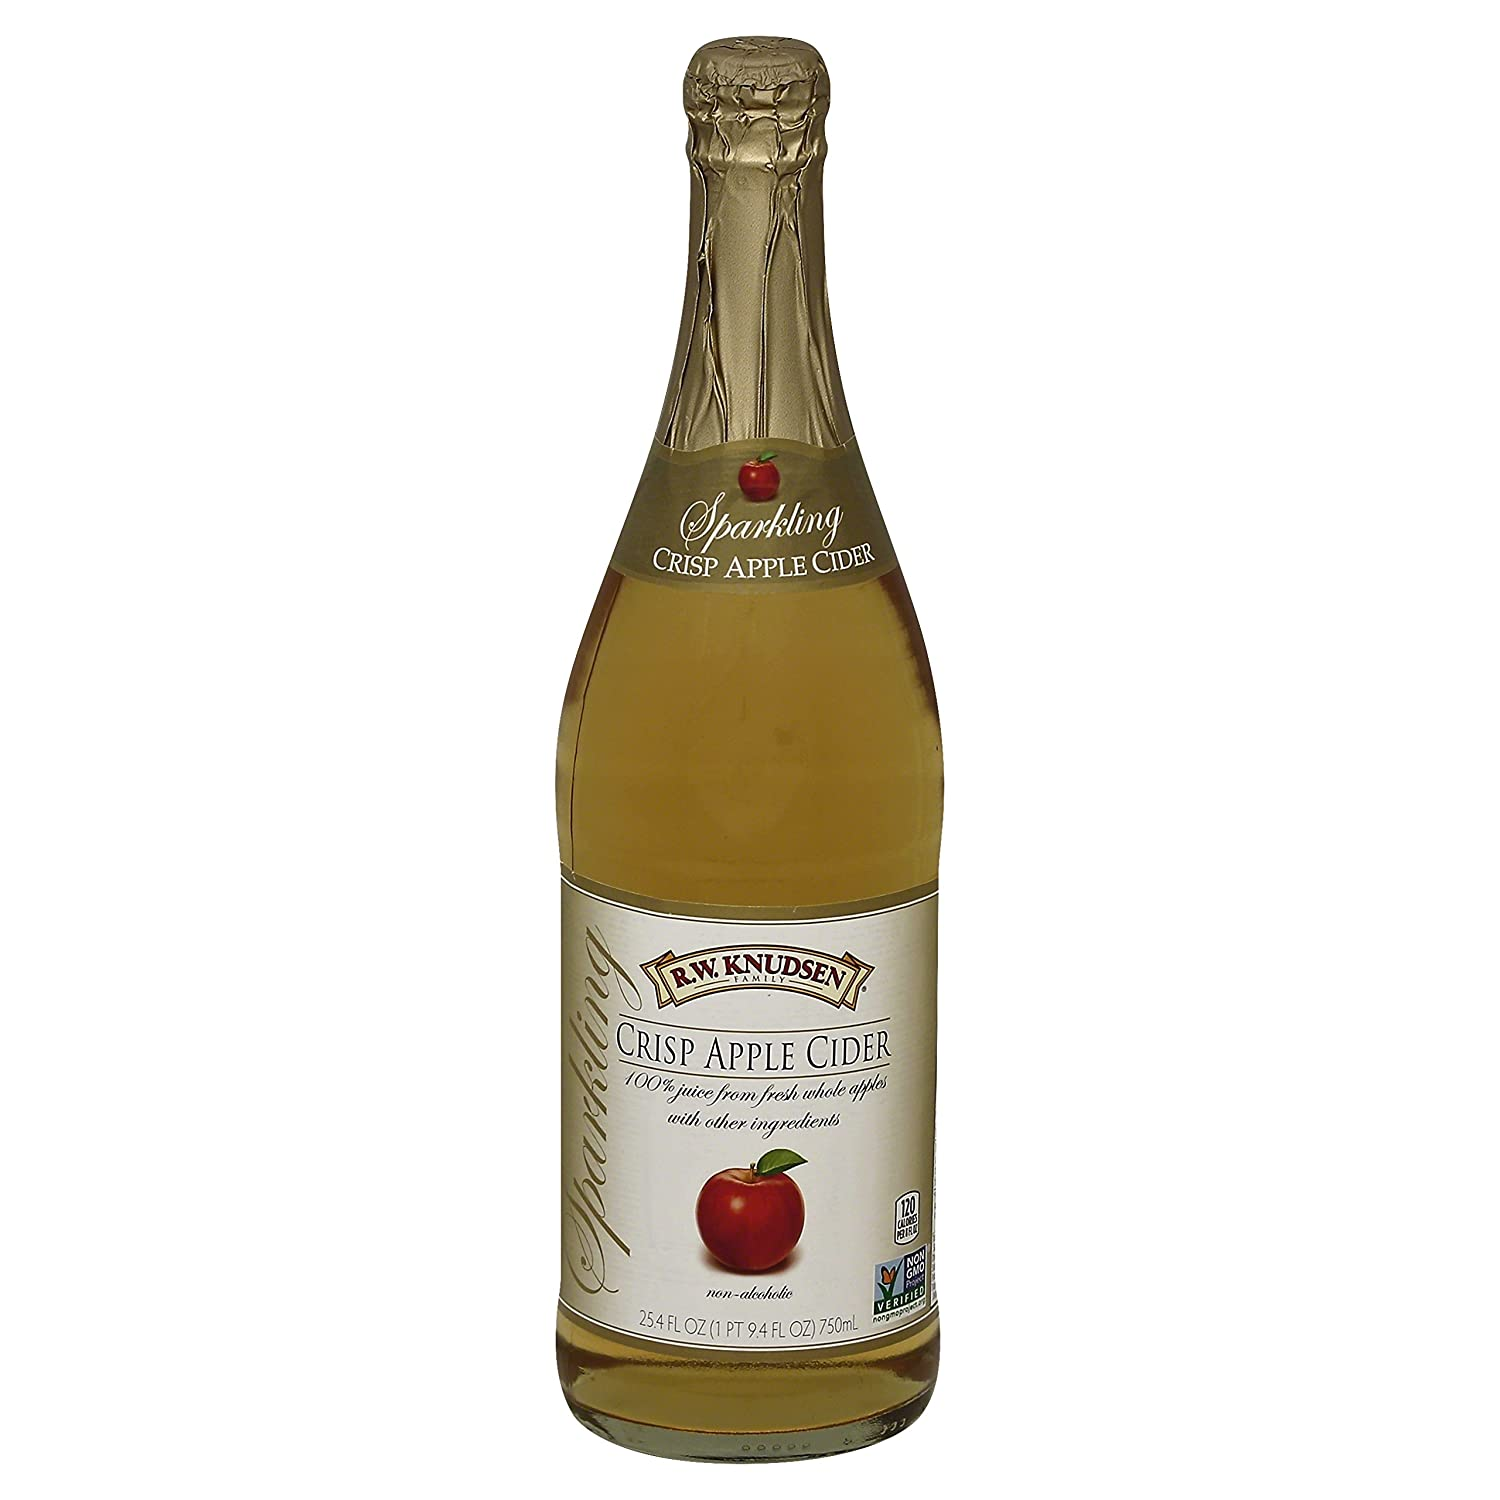 Knudsen, Sparkling Crisp Apple Cider, 750 ml